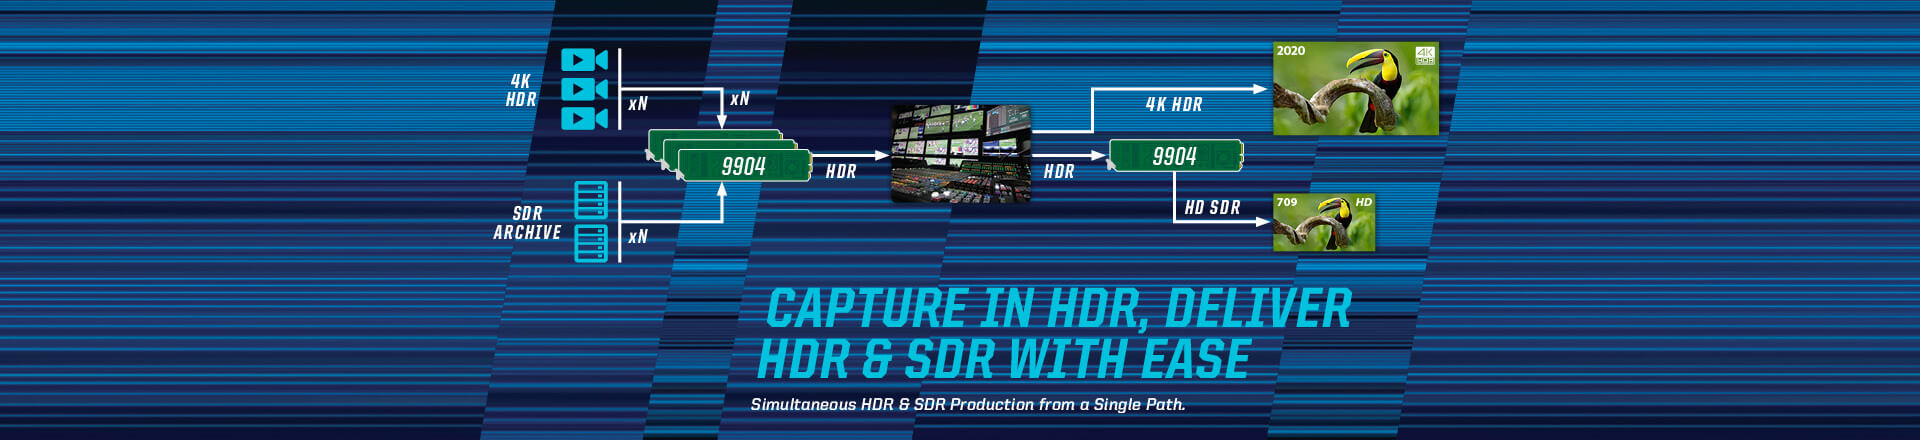 Capture in HDR, Deliver in HDR & SDR